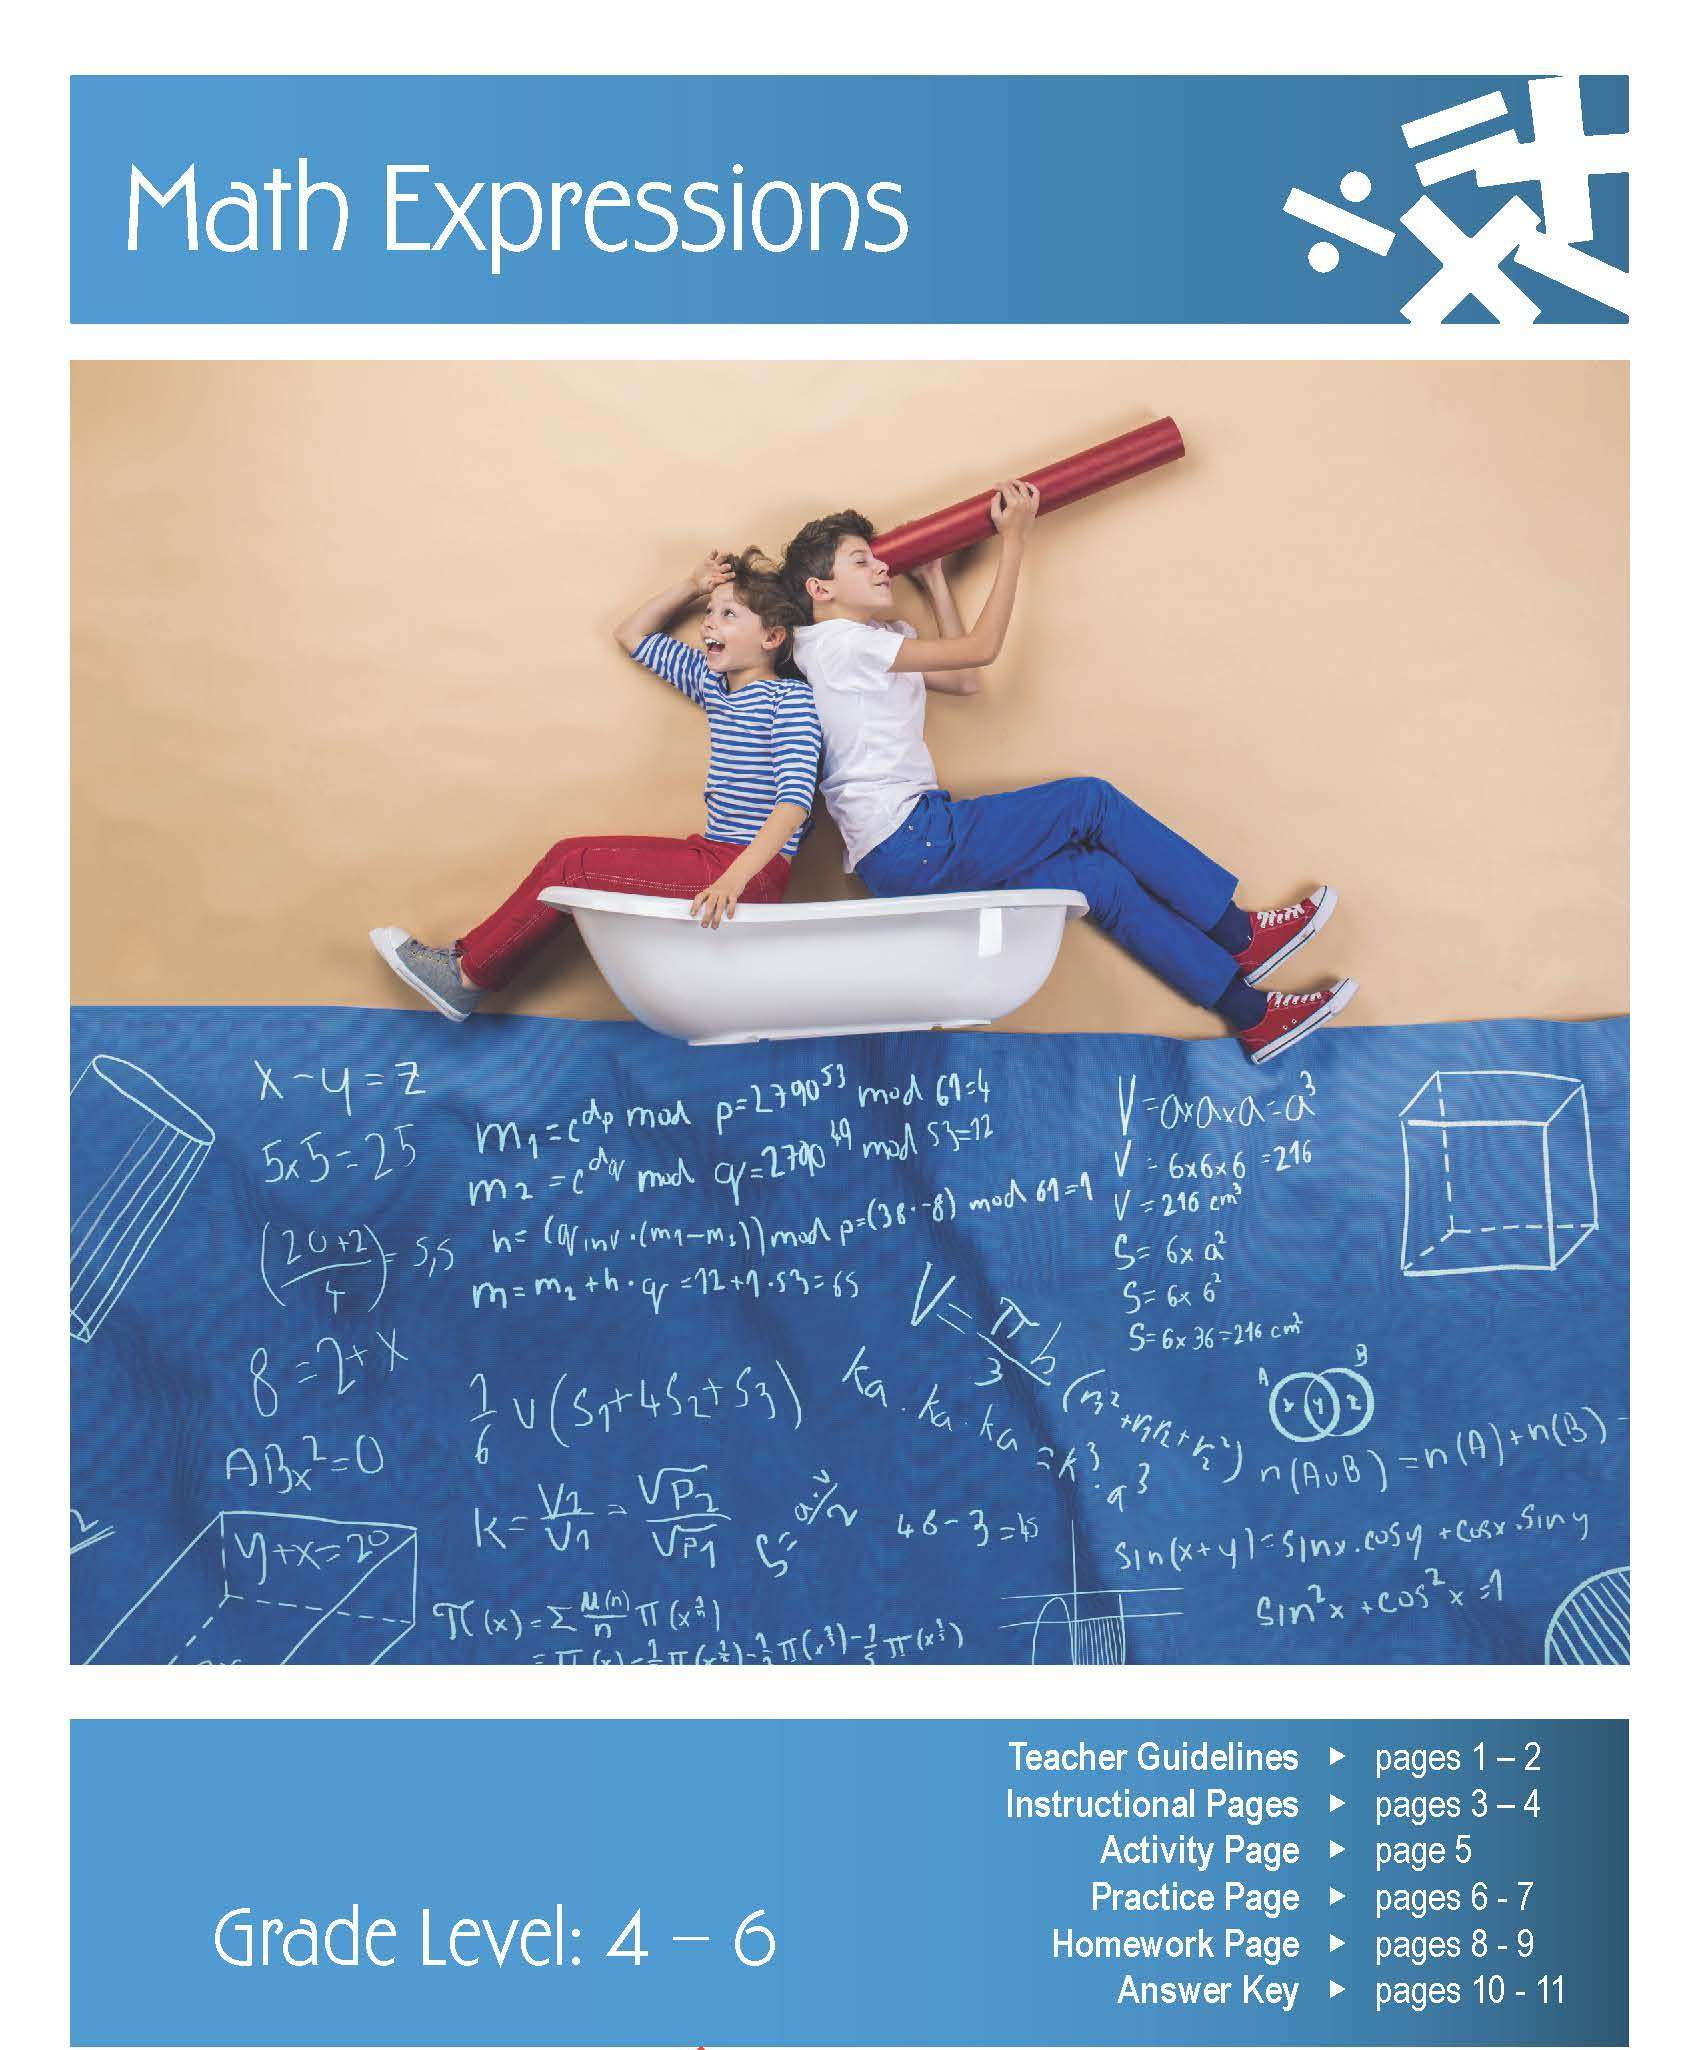 Math Expressions Lesson Plan | Clarendon Learning